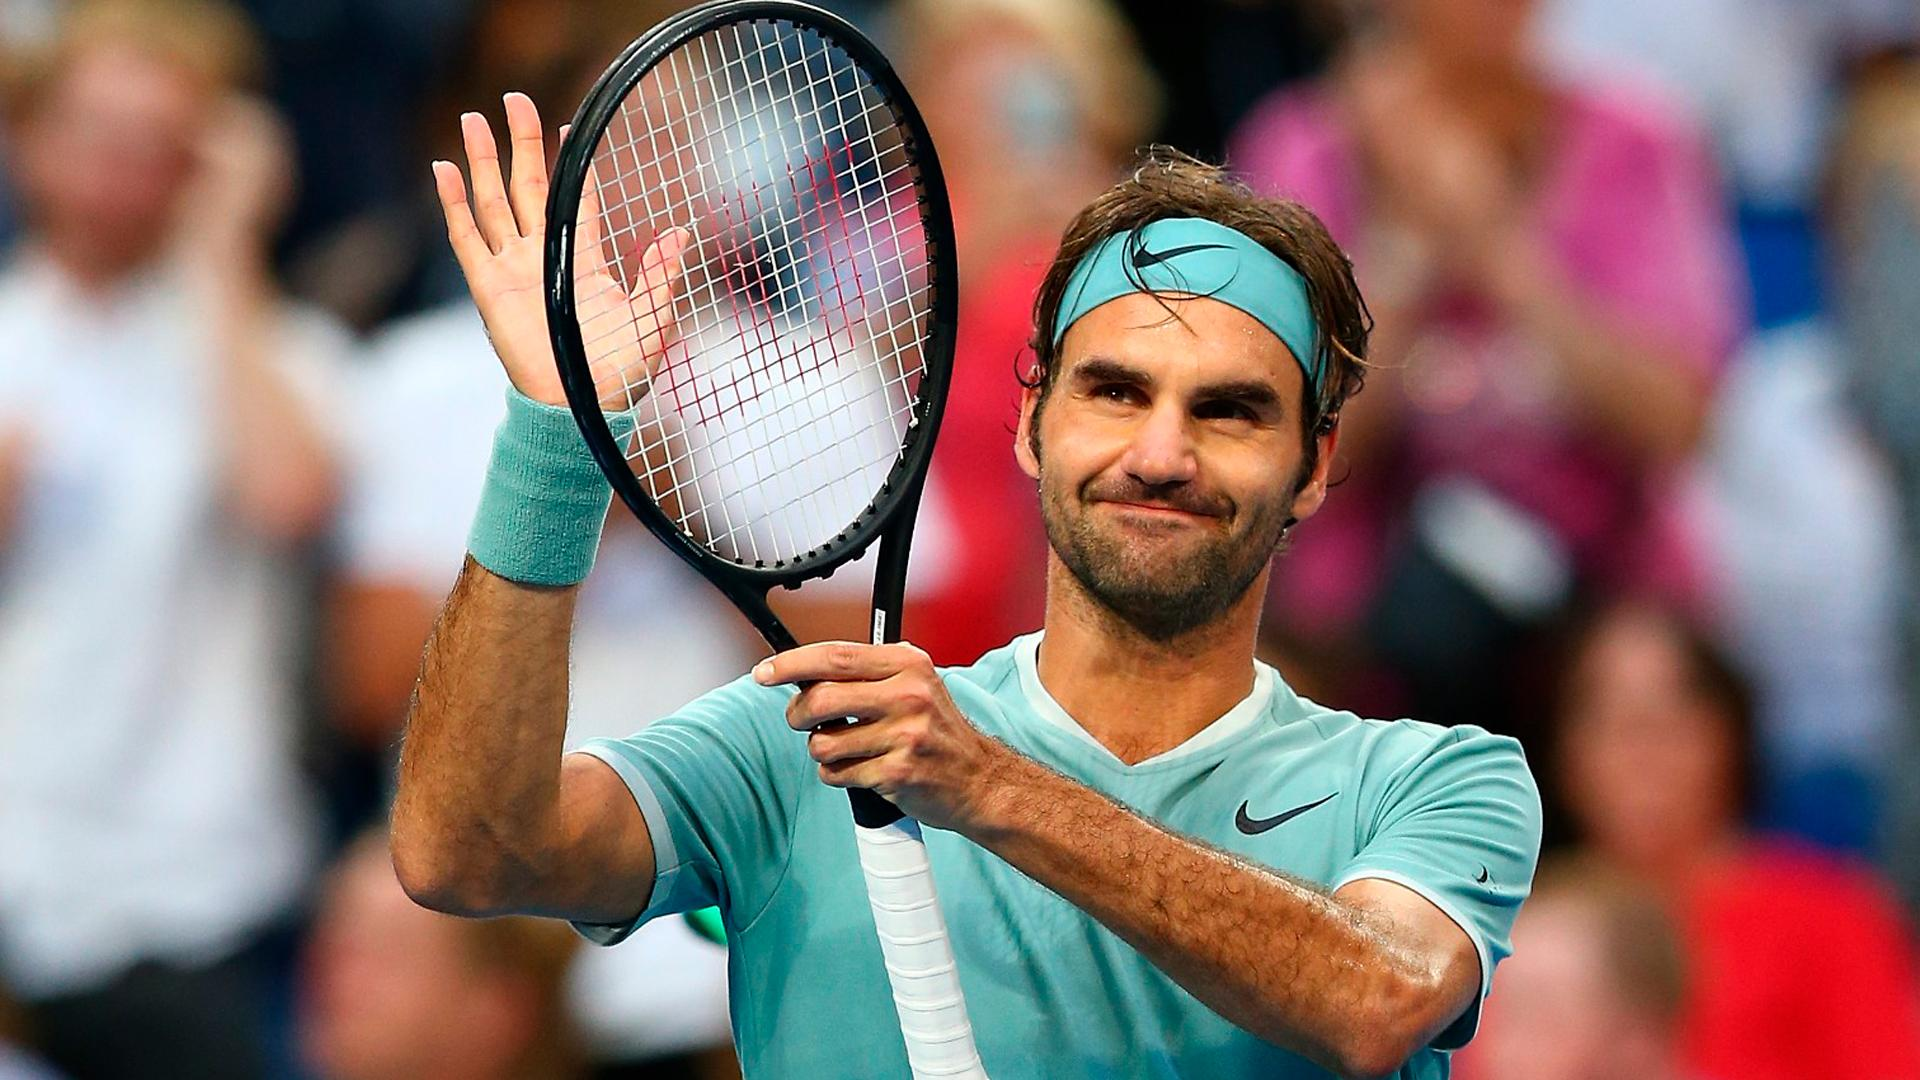 Federer claims title number 97 in Rotterdam